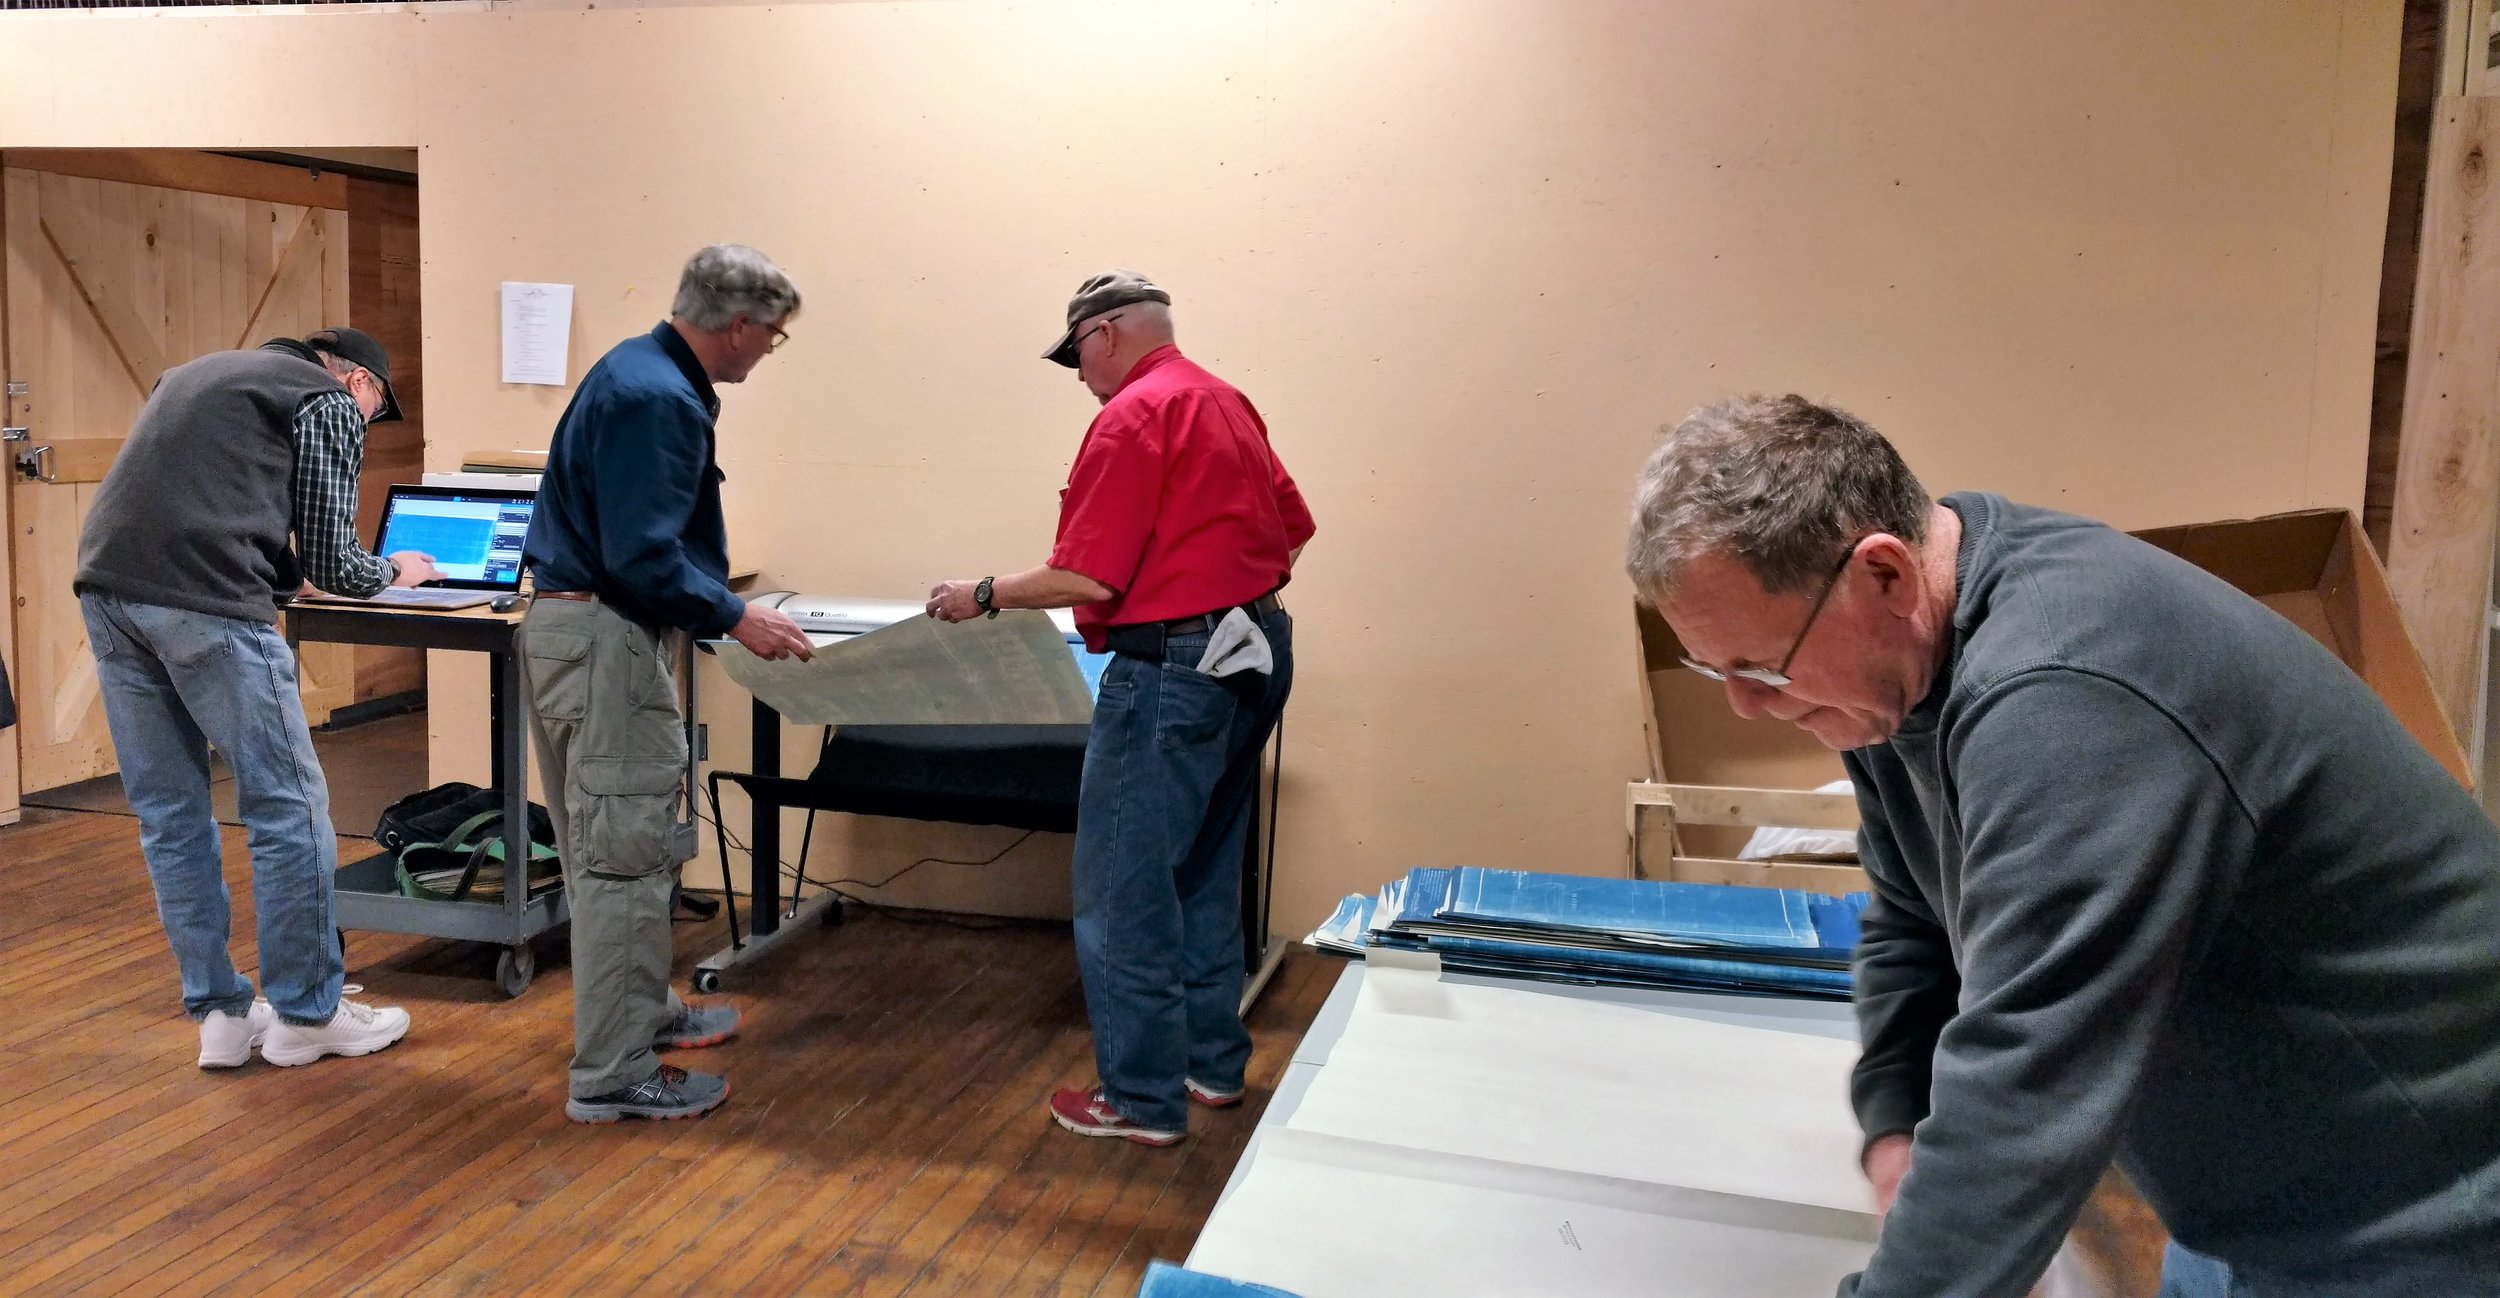 March 31, 2018. Archives work session devoted to moving storage boxes into the new space and to trying out our new continuous feed scanner. The scanning crew is pictured here. Left to right: Jimi Smith, Coley Walsh, Jack madden, and Bob Farrenkopf. Dan Hyde photo